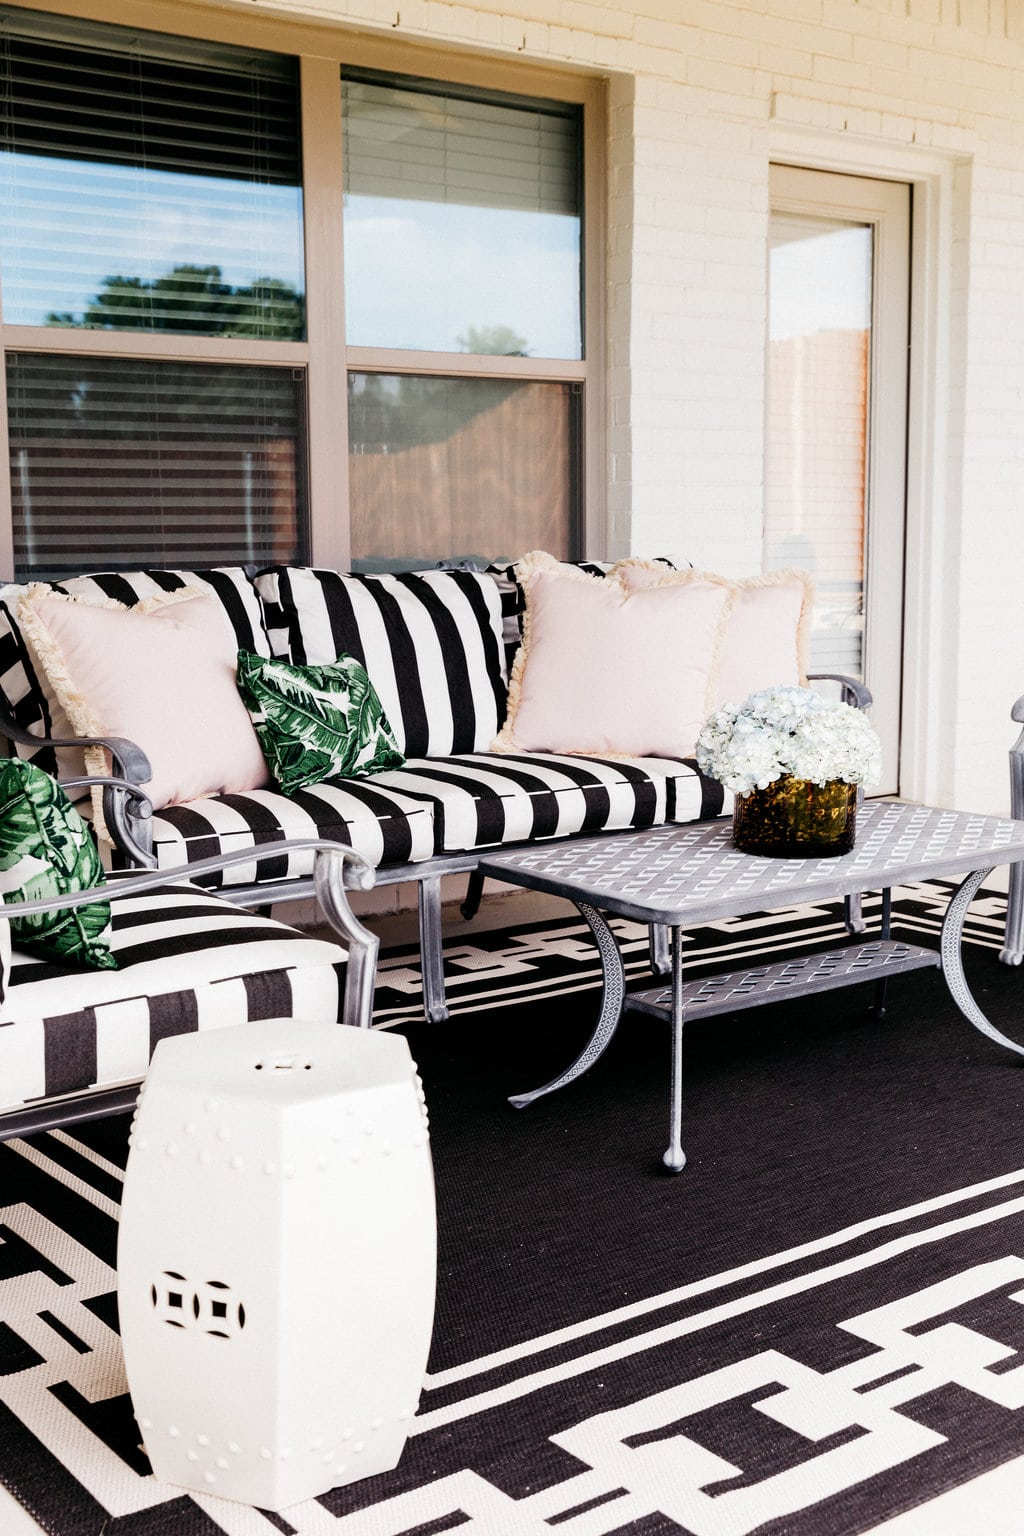 Dining Table U0026 Chairs | Sofa | Side Chairs | Coffee Table | Cushions | Pink  Pillows | Palm Pillows | Rug | Tortoise Vase | Miles Redd Garden Stools |  Pram ...